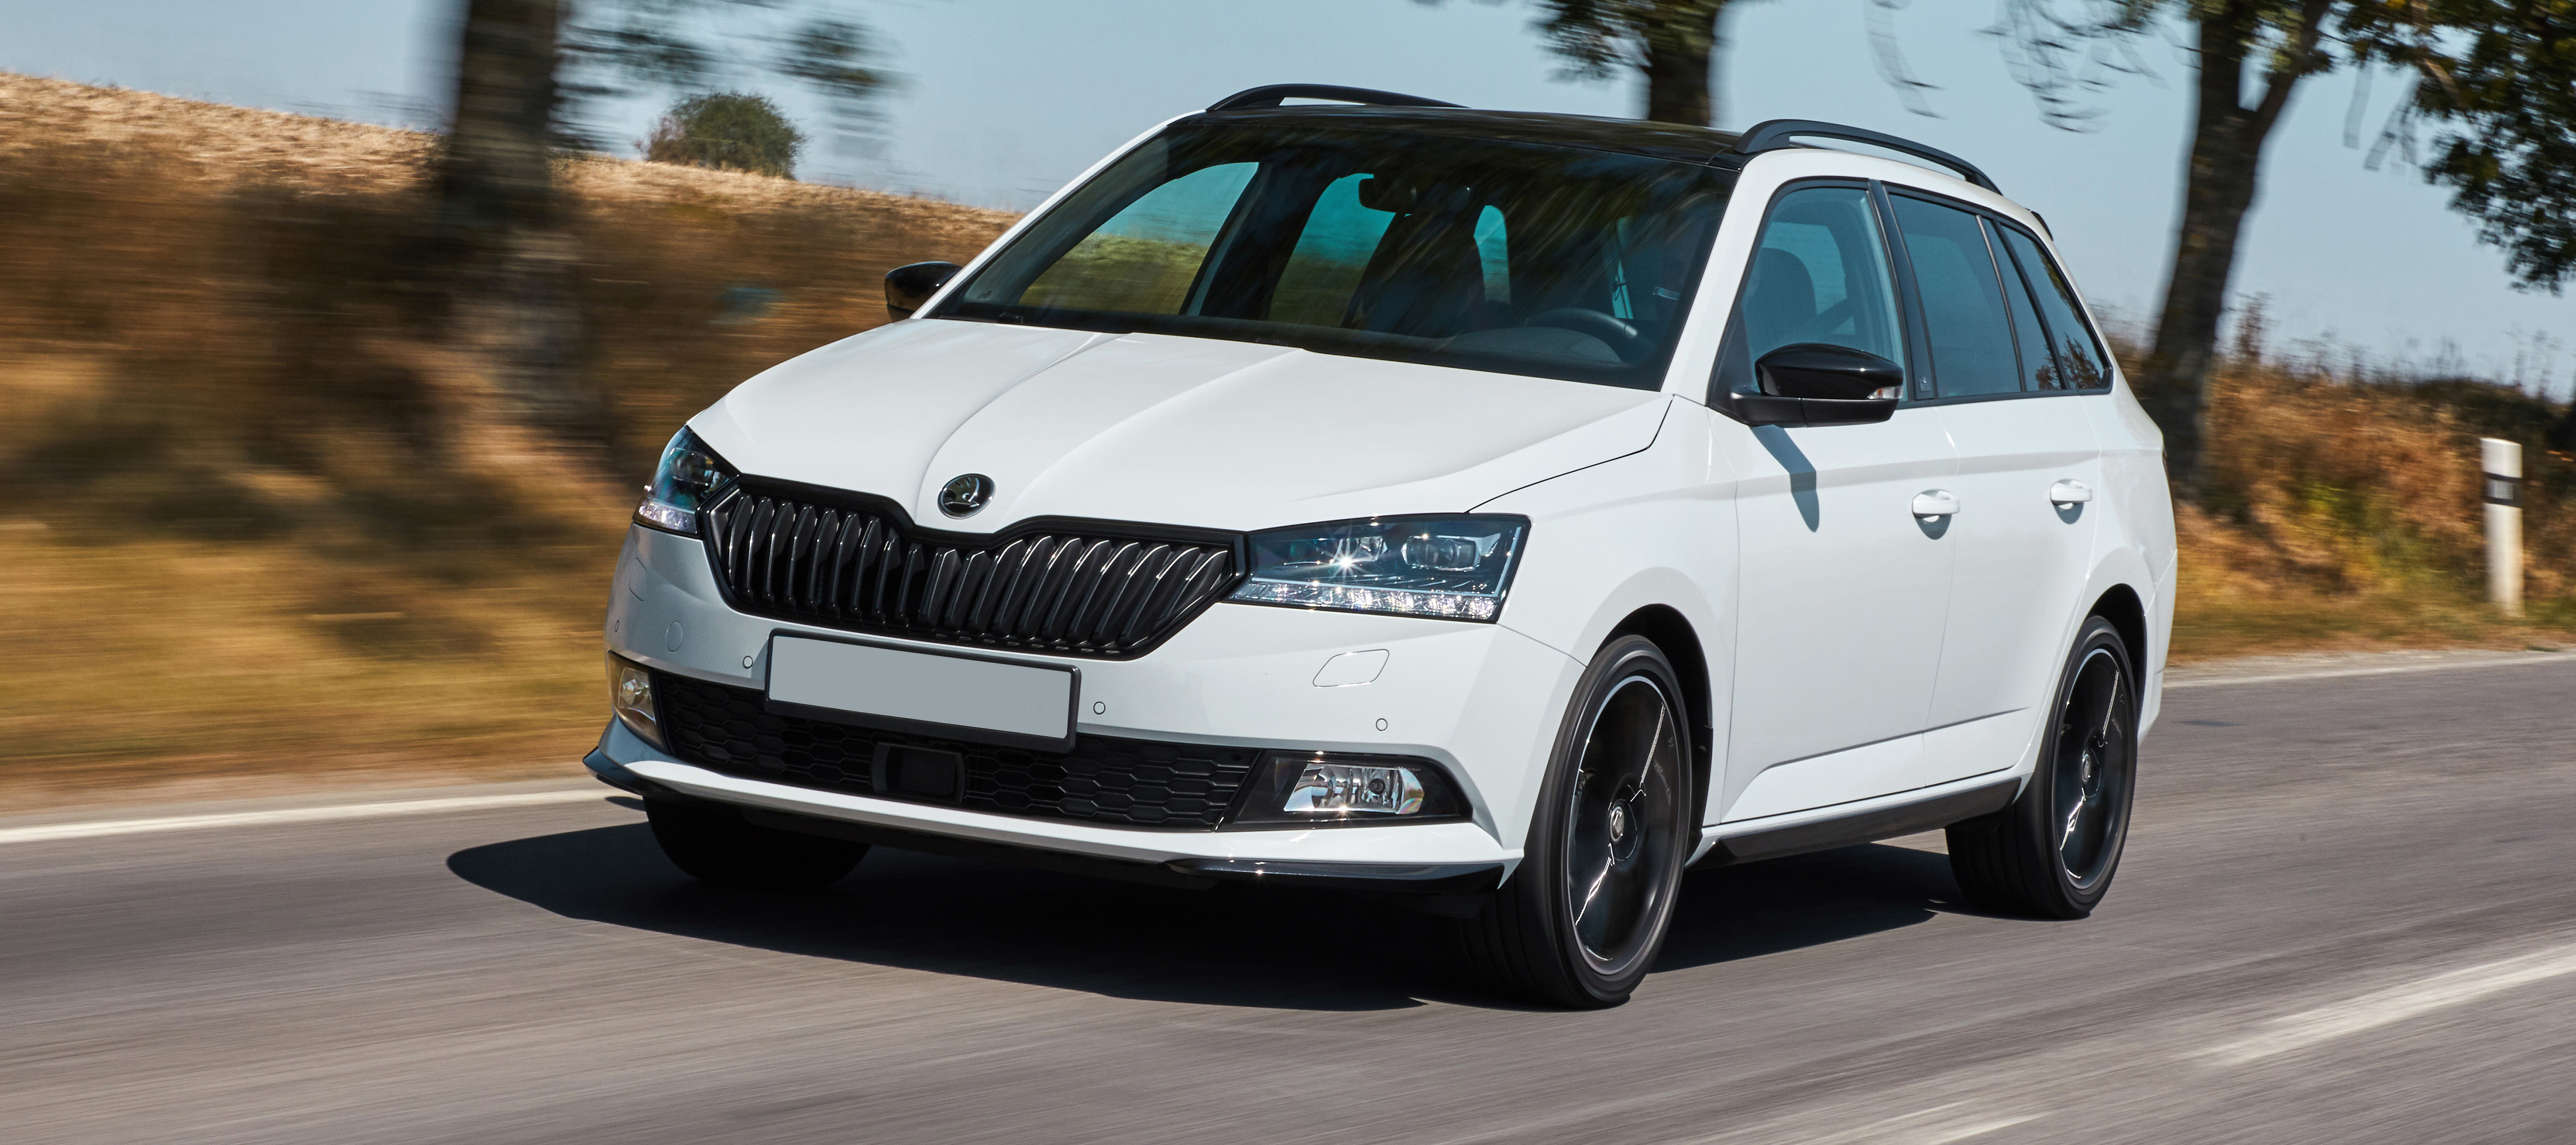 Skoda Fabia Estate Specifications Prices Carwow